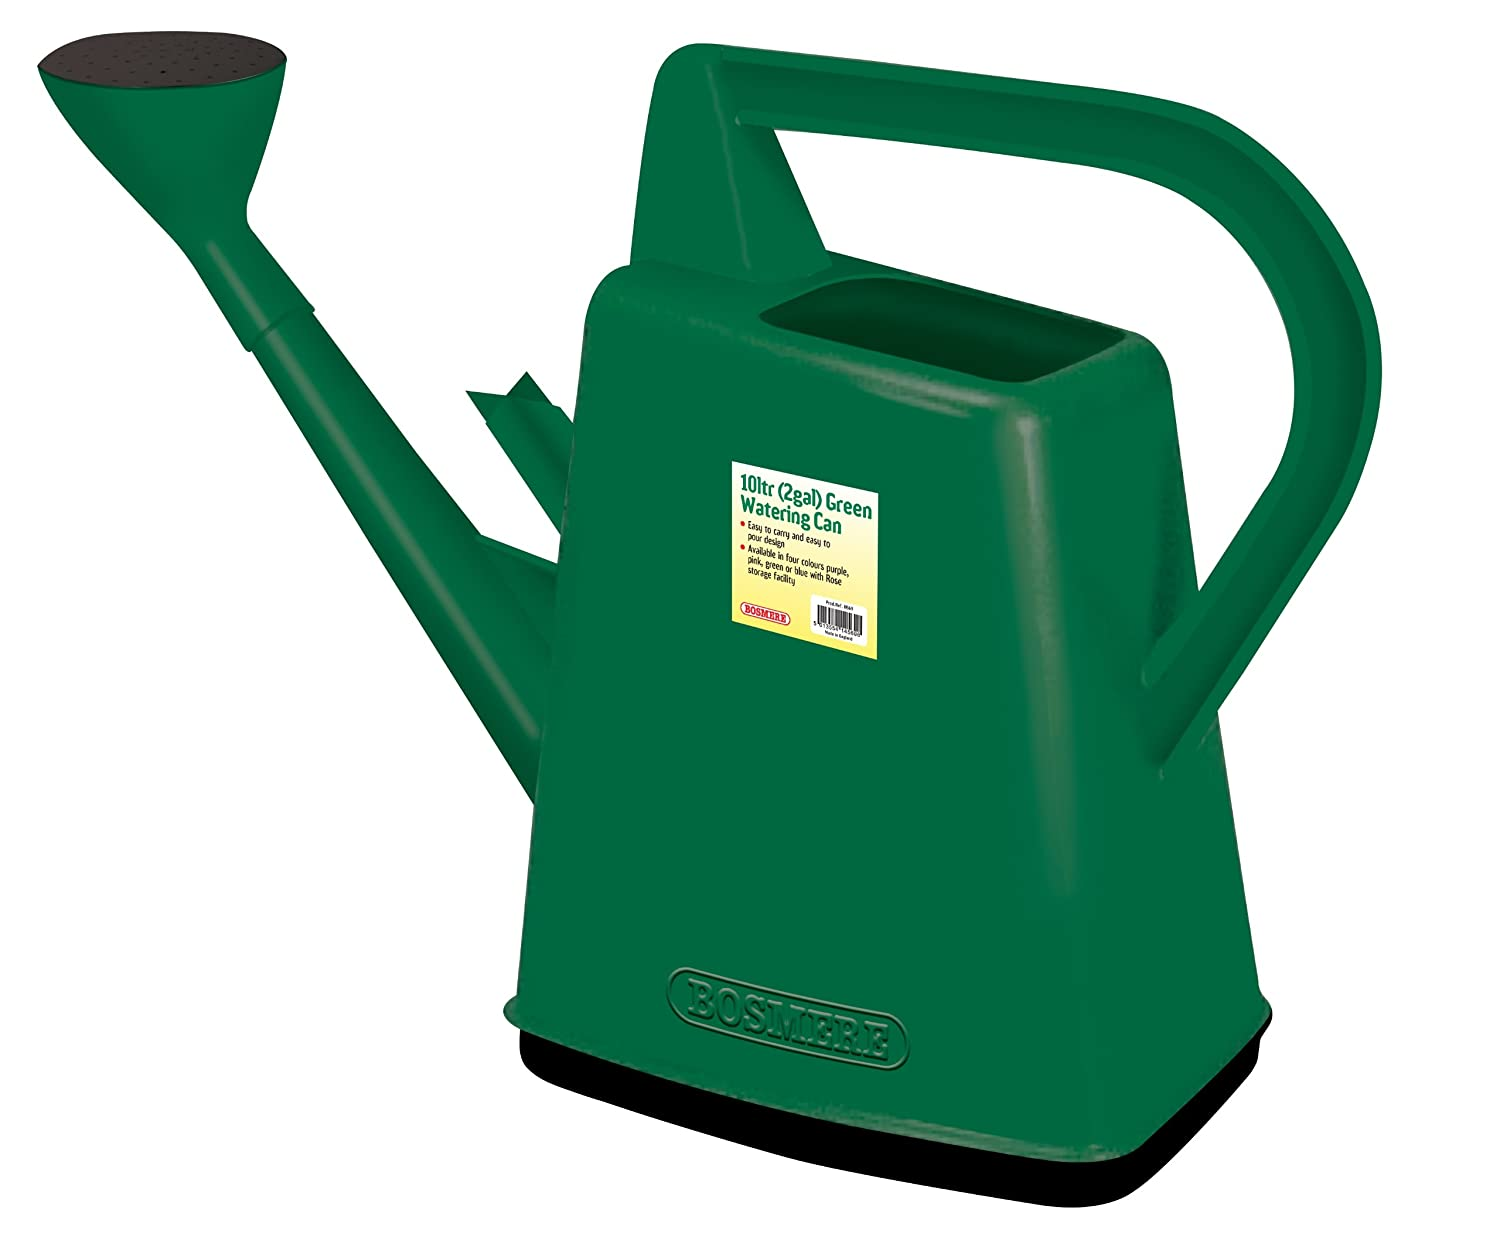 amazoncom bosmere plastic outdoor watering can 26 gallon green garden outdoor - Garden Watering Can